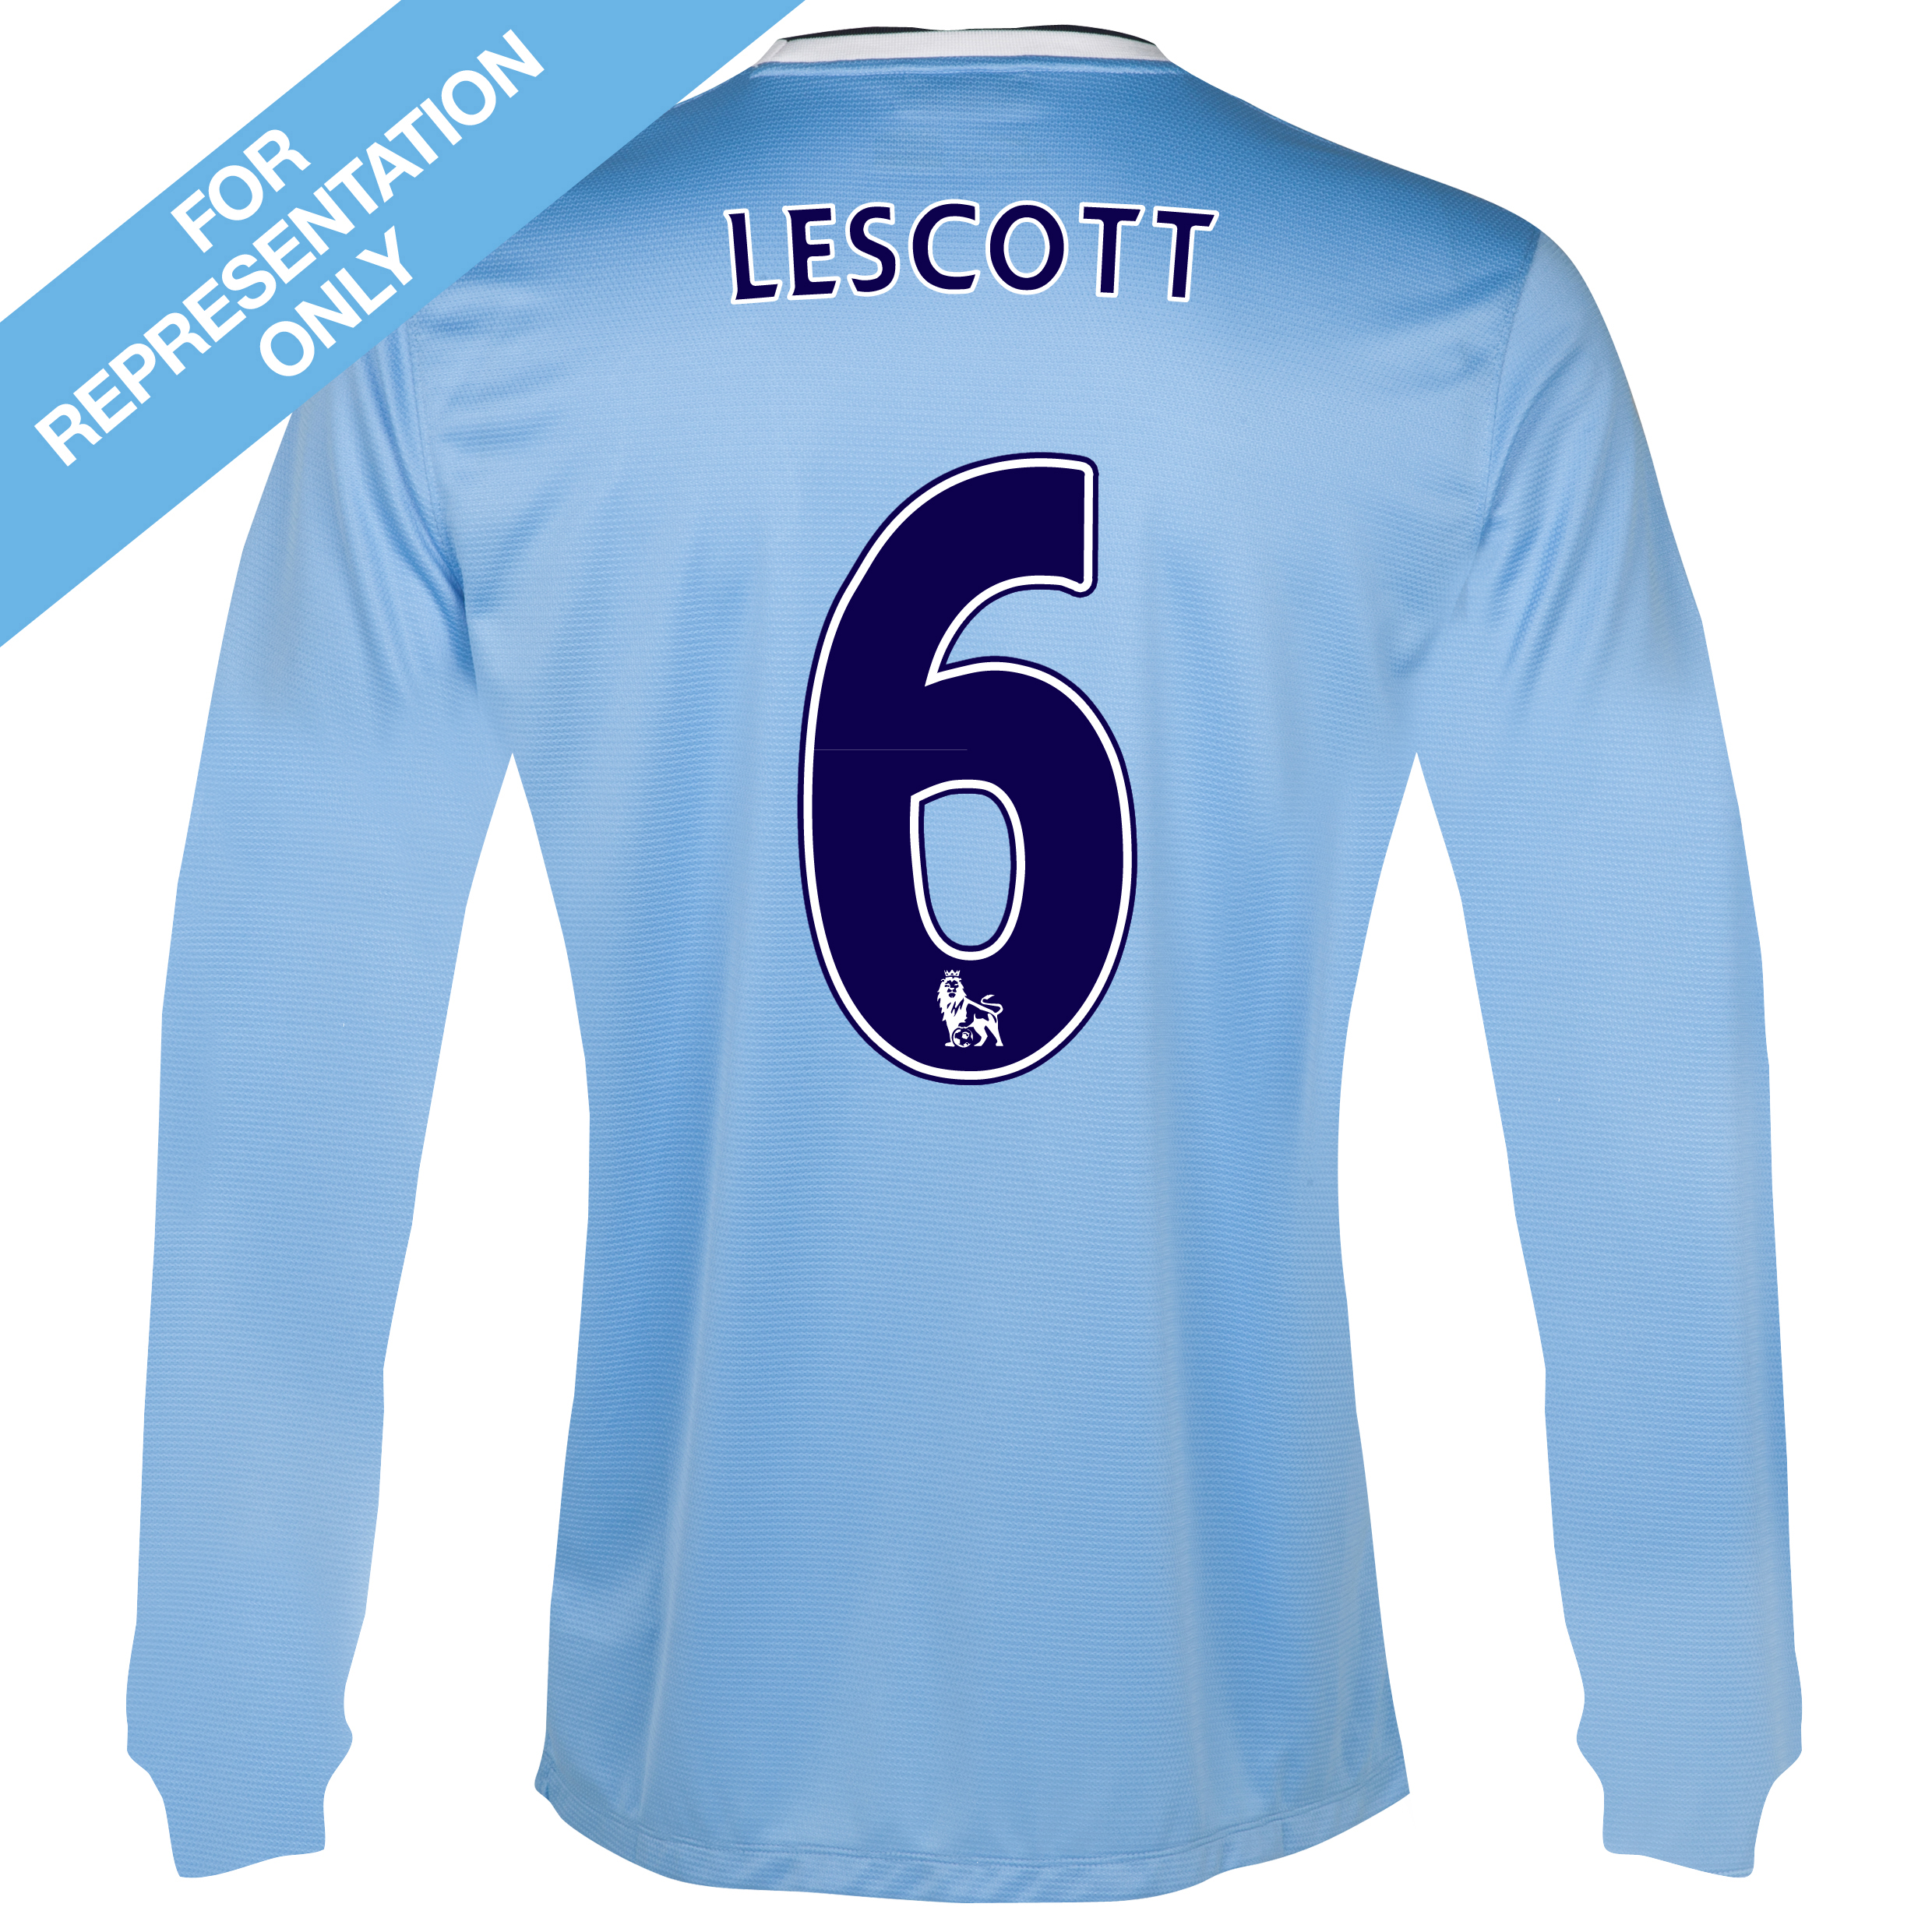 Manchester City Home Shirt 2013/14 - Long Sleeved - Junior with Lescott 6 printing